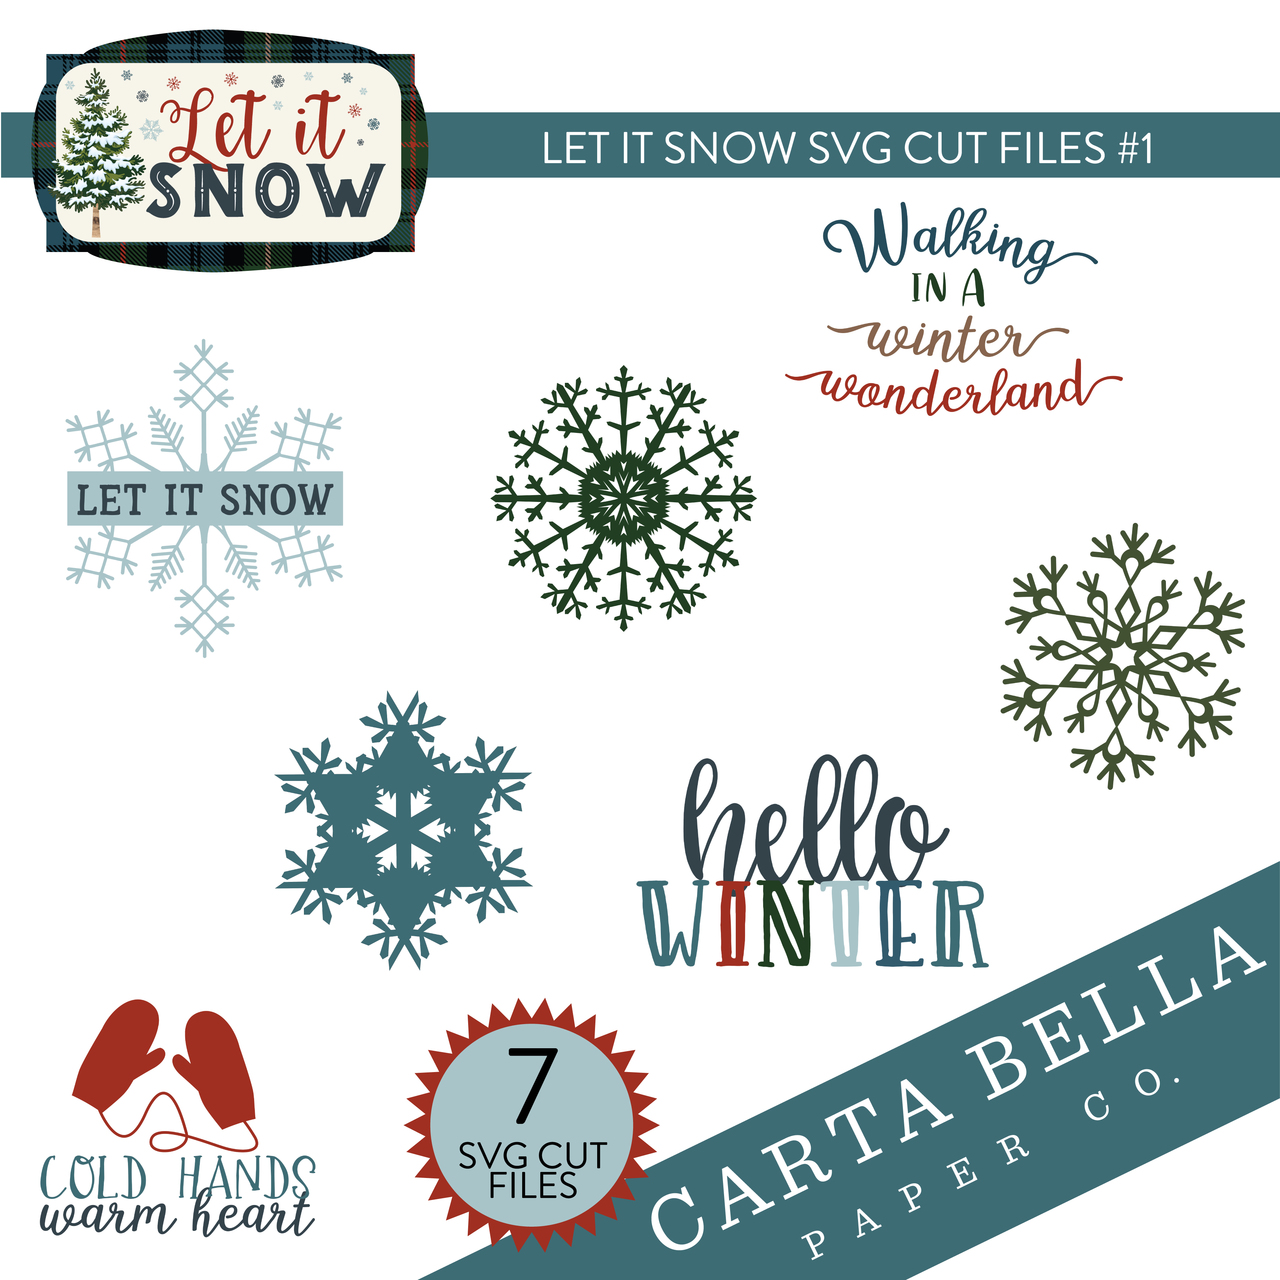 Let It Snow SVG Cut Files #1